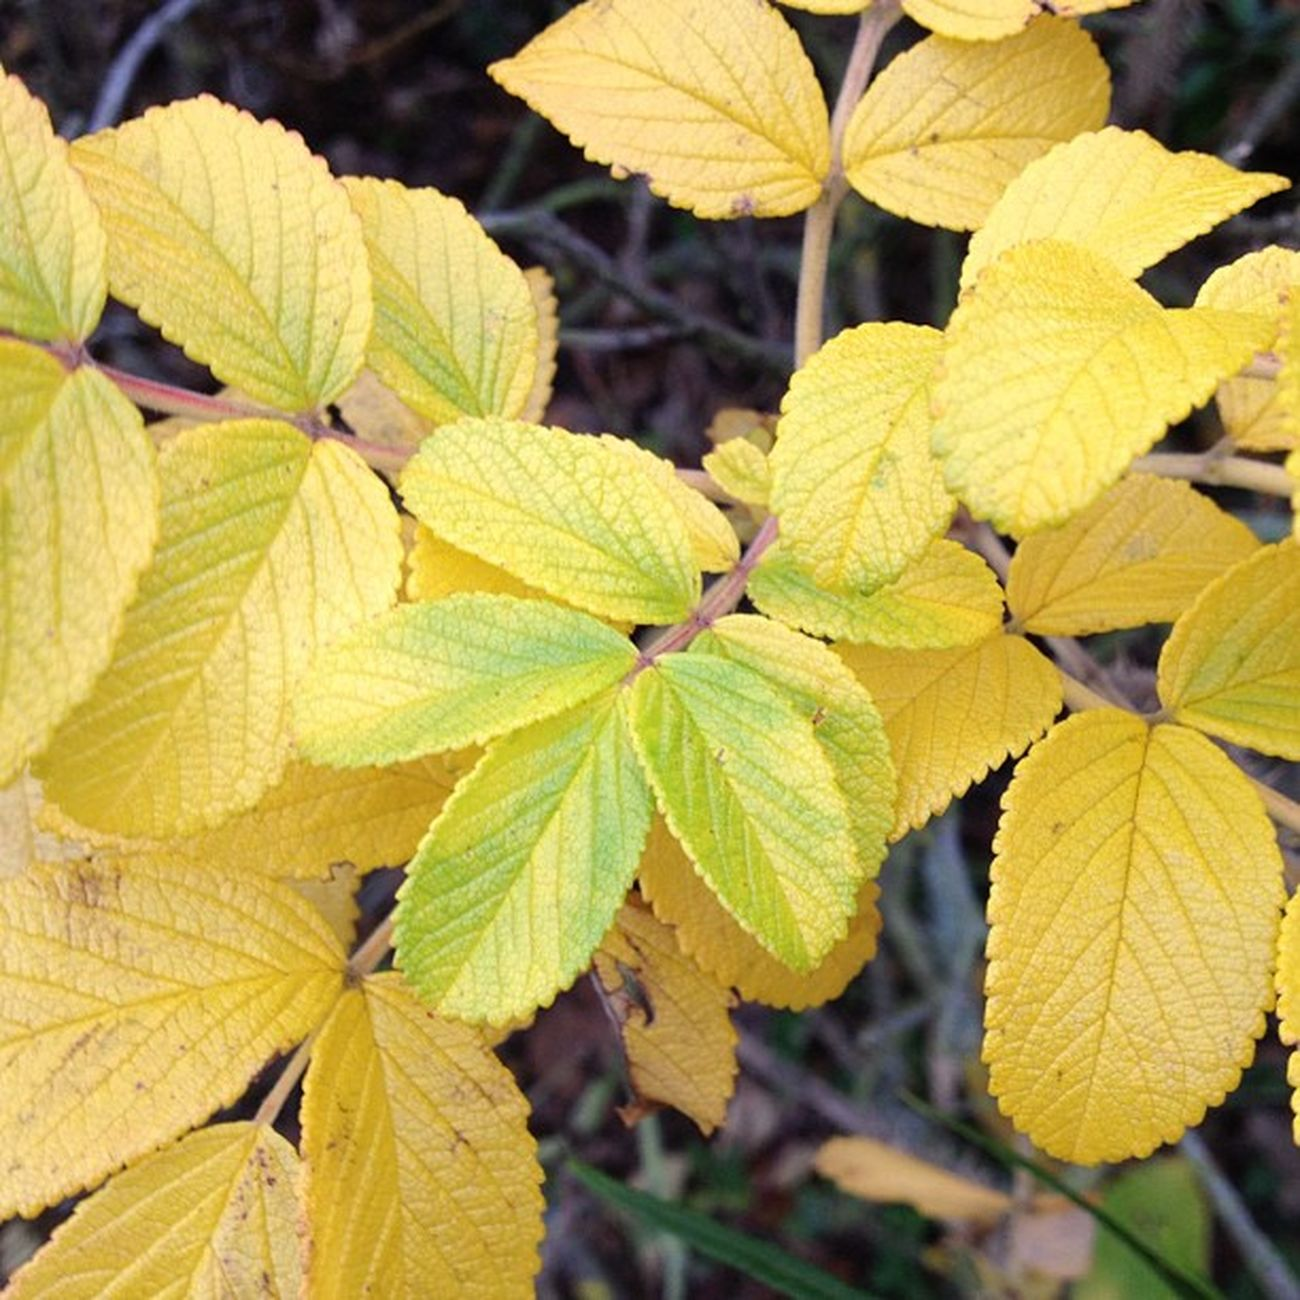 Yellow and Green Leaves Bush plants nature naturalcolours living autumn winter sunderland northeast england nofilter instanow instanature instacapture instafeature